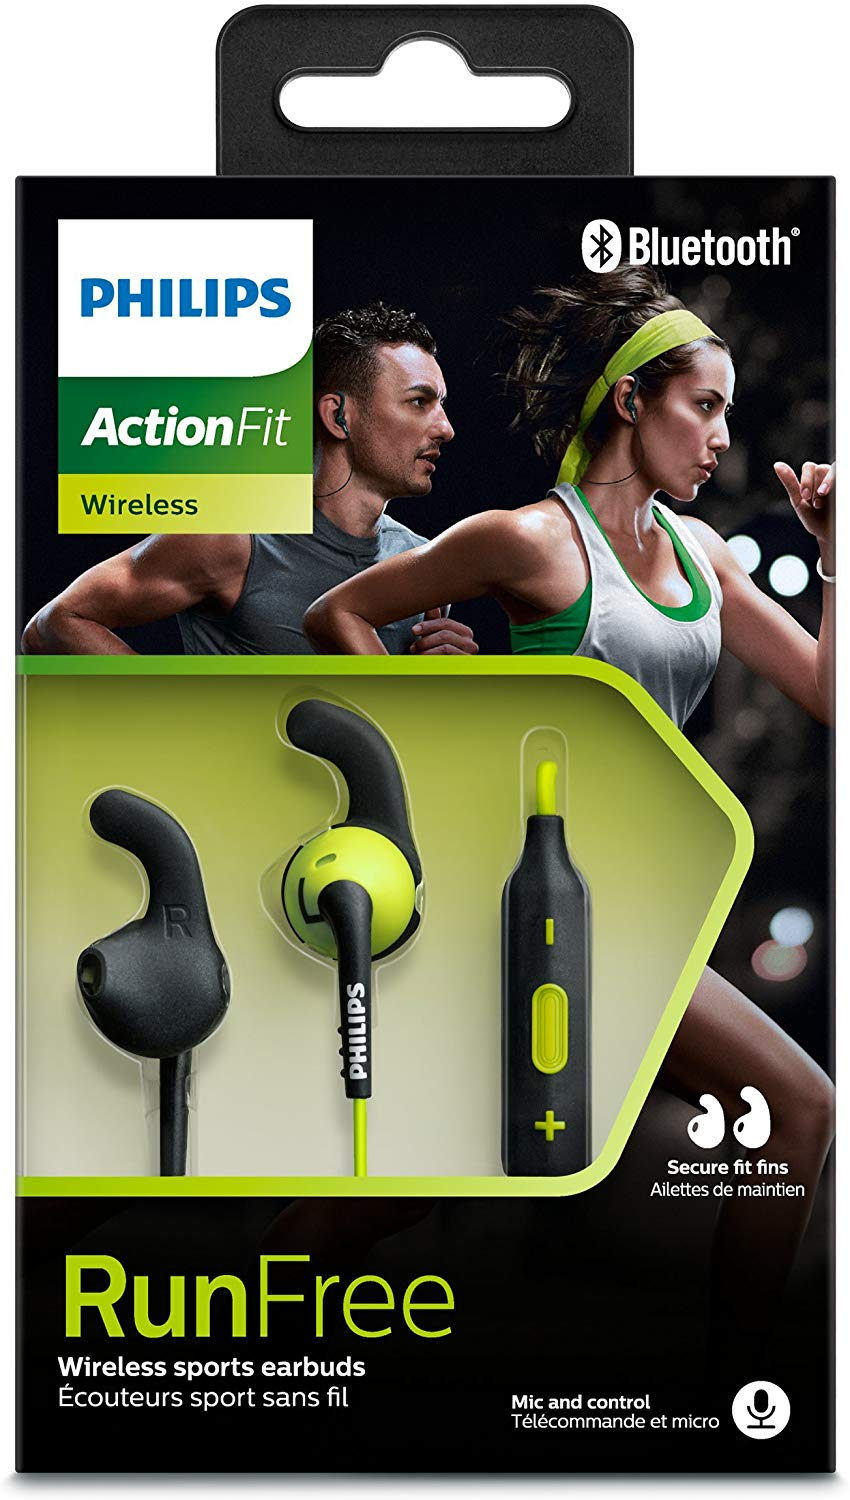 Fone Sport Sem Fio, Bluetooth Action Fit In Ear Resistente Ao Suor, Philips, SHQ6500Cl/00